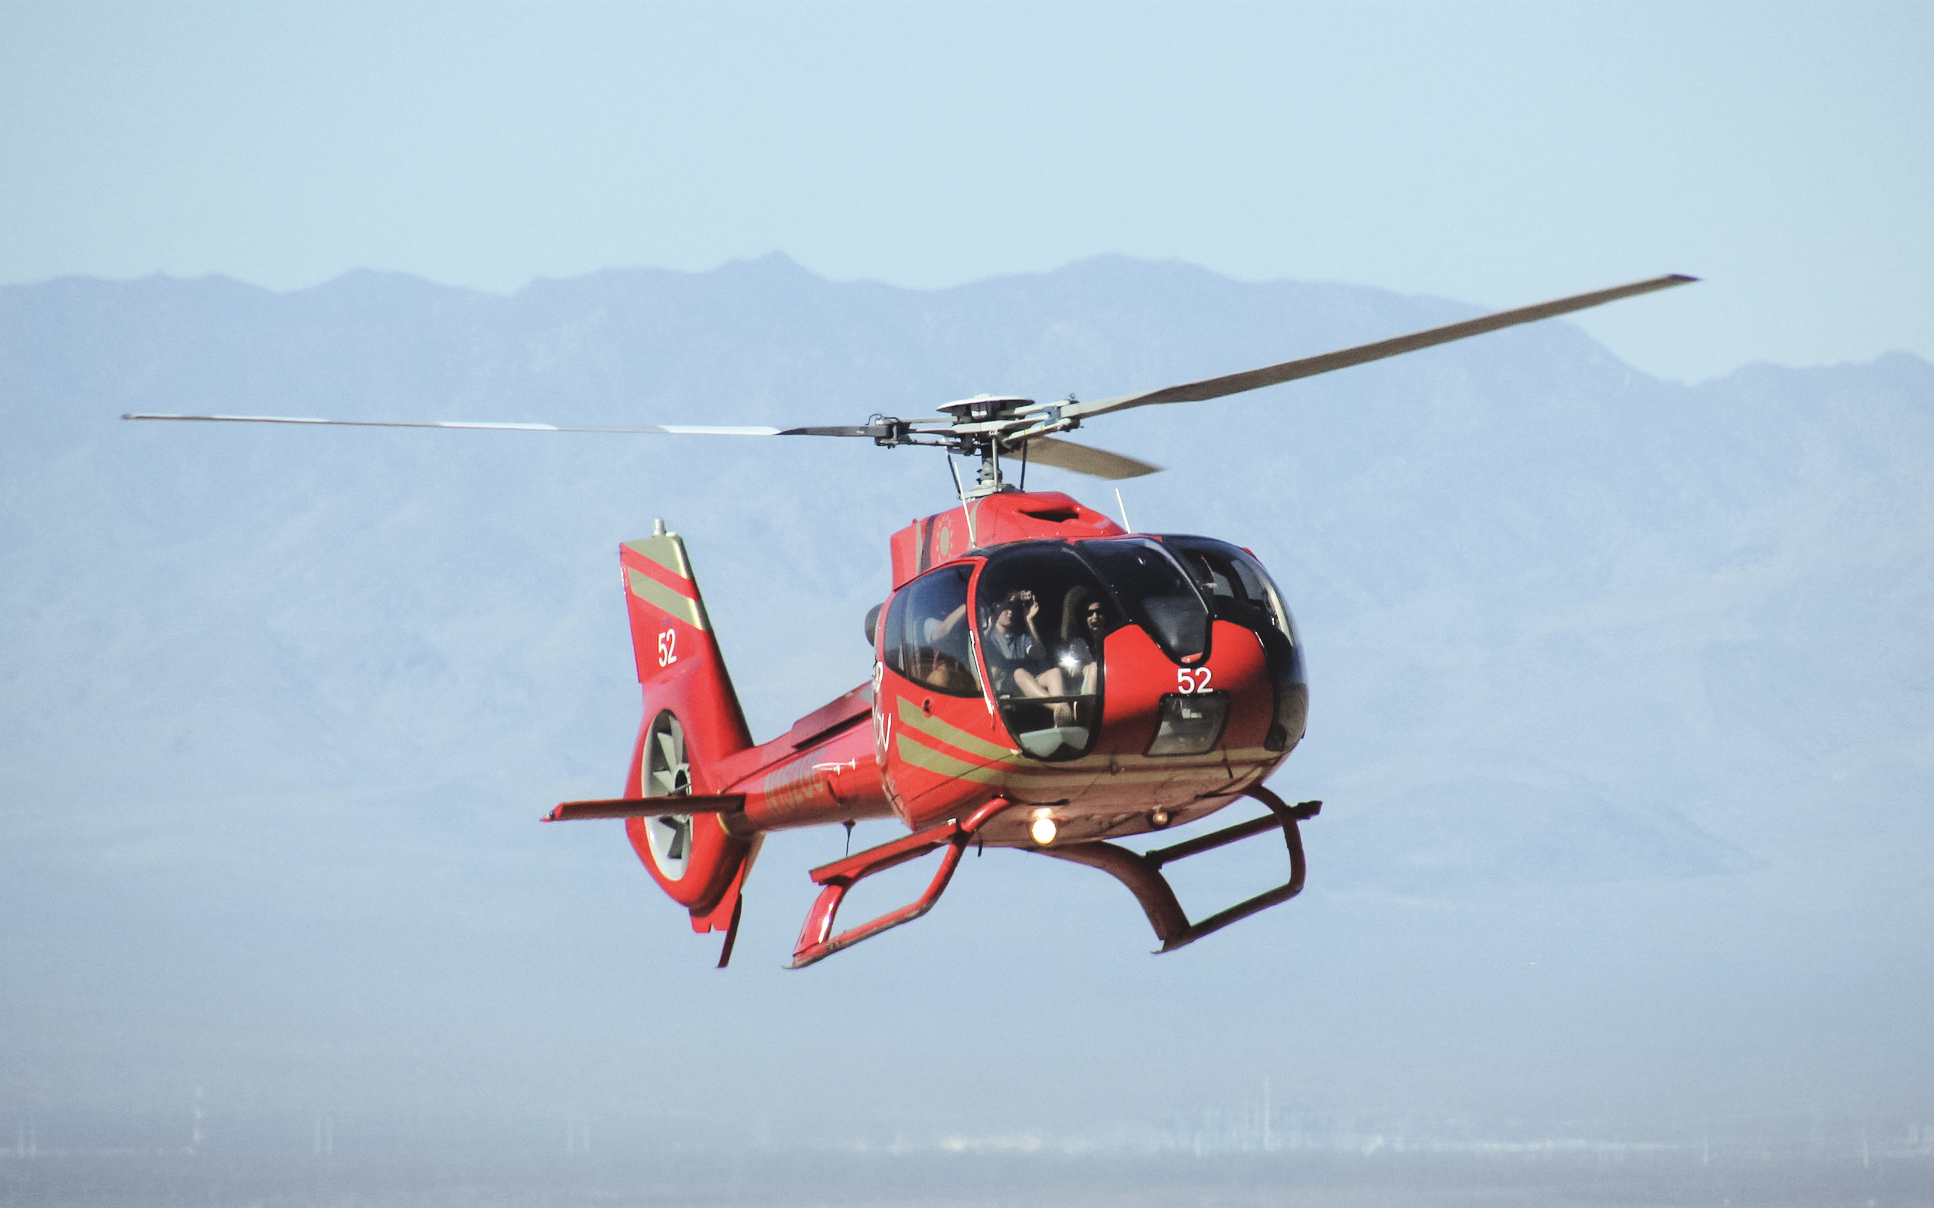 grand canyon heli tour with Grand Canyon North Rim Bus Tour on Summer Scenic Flights Bend Oregon additionally Hawaii besides Address Grand Canyon West Rim furthermore Niagara Falls Helicopter Tour as well Tour  panies Offer Alternatives Skiing Bend Oregon.